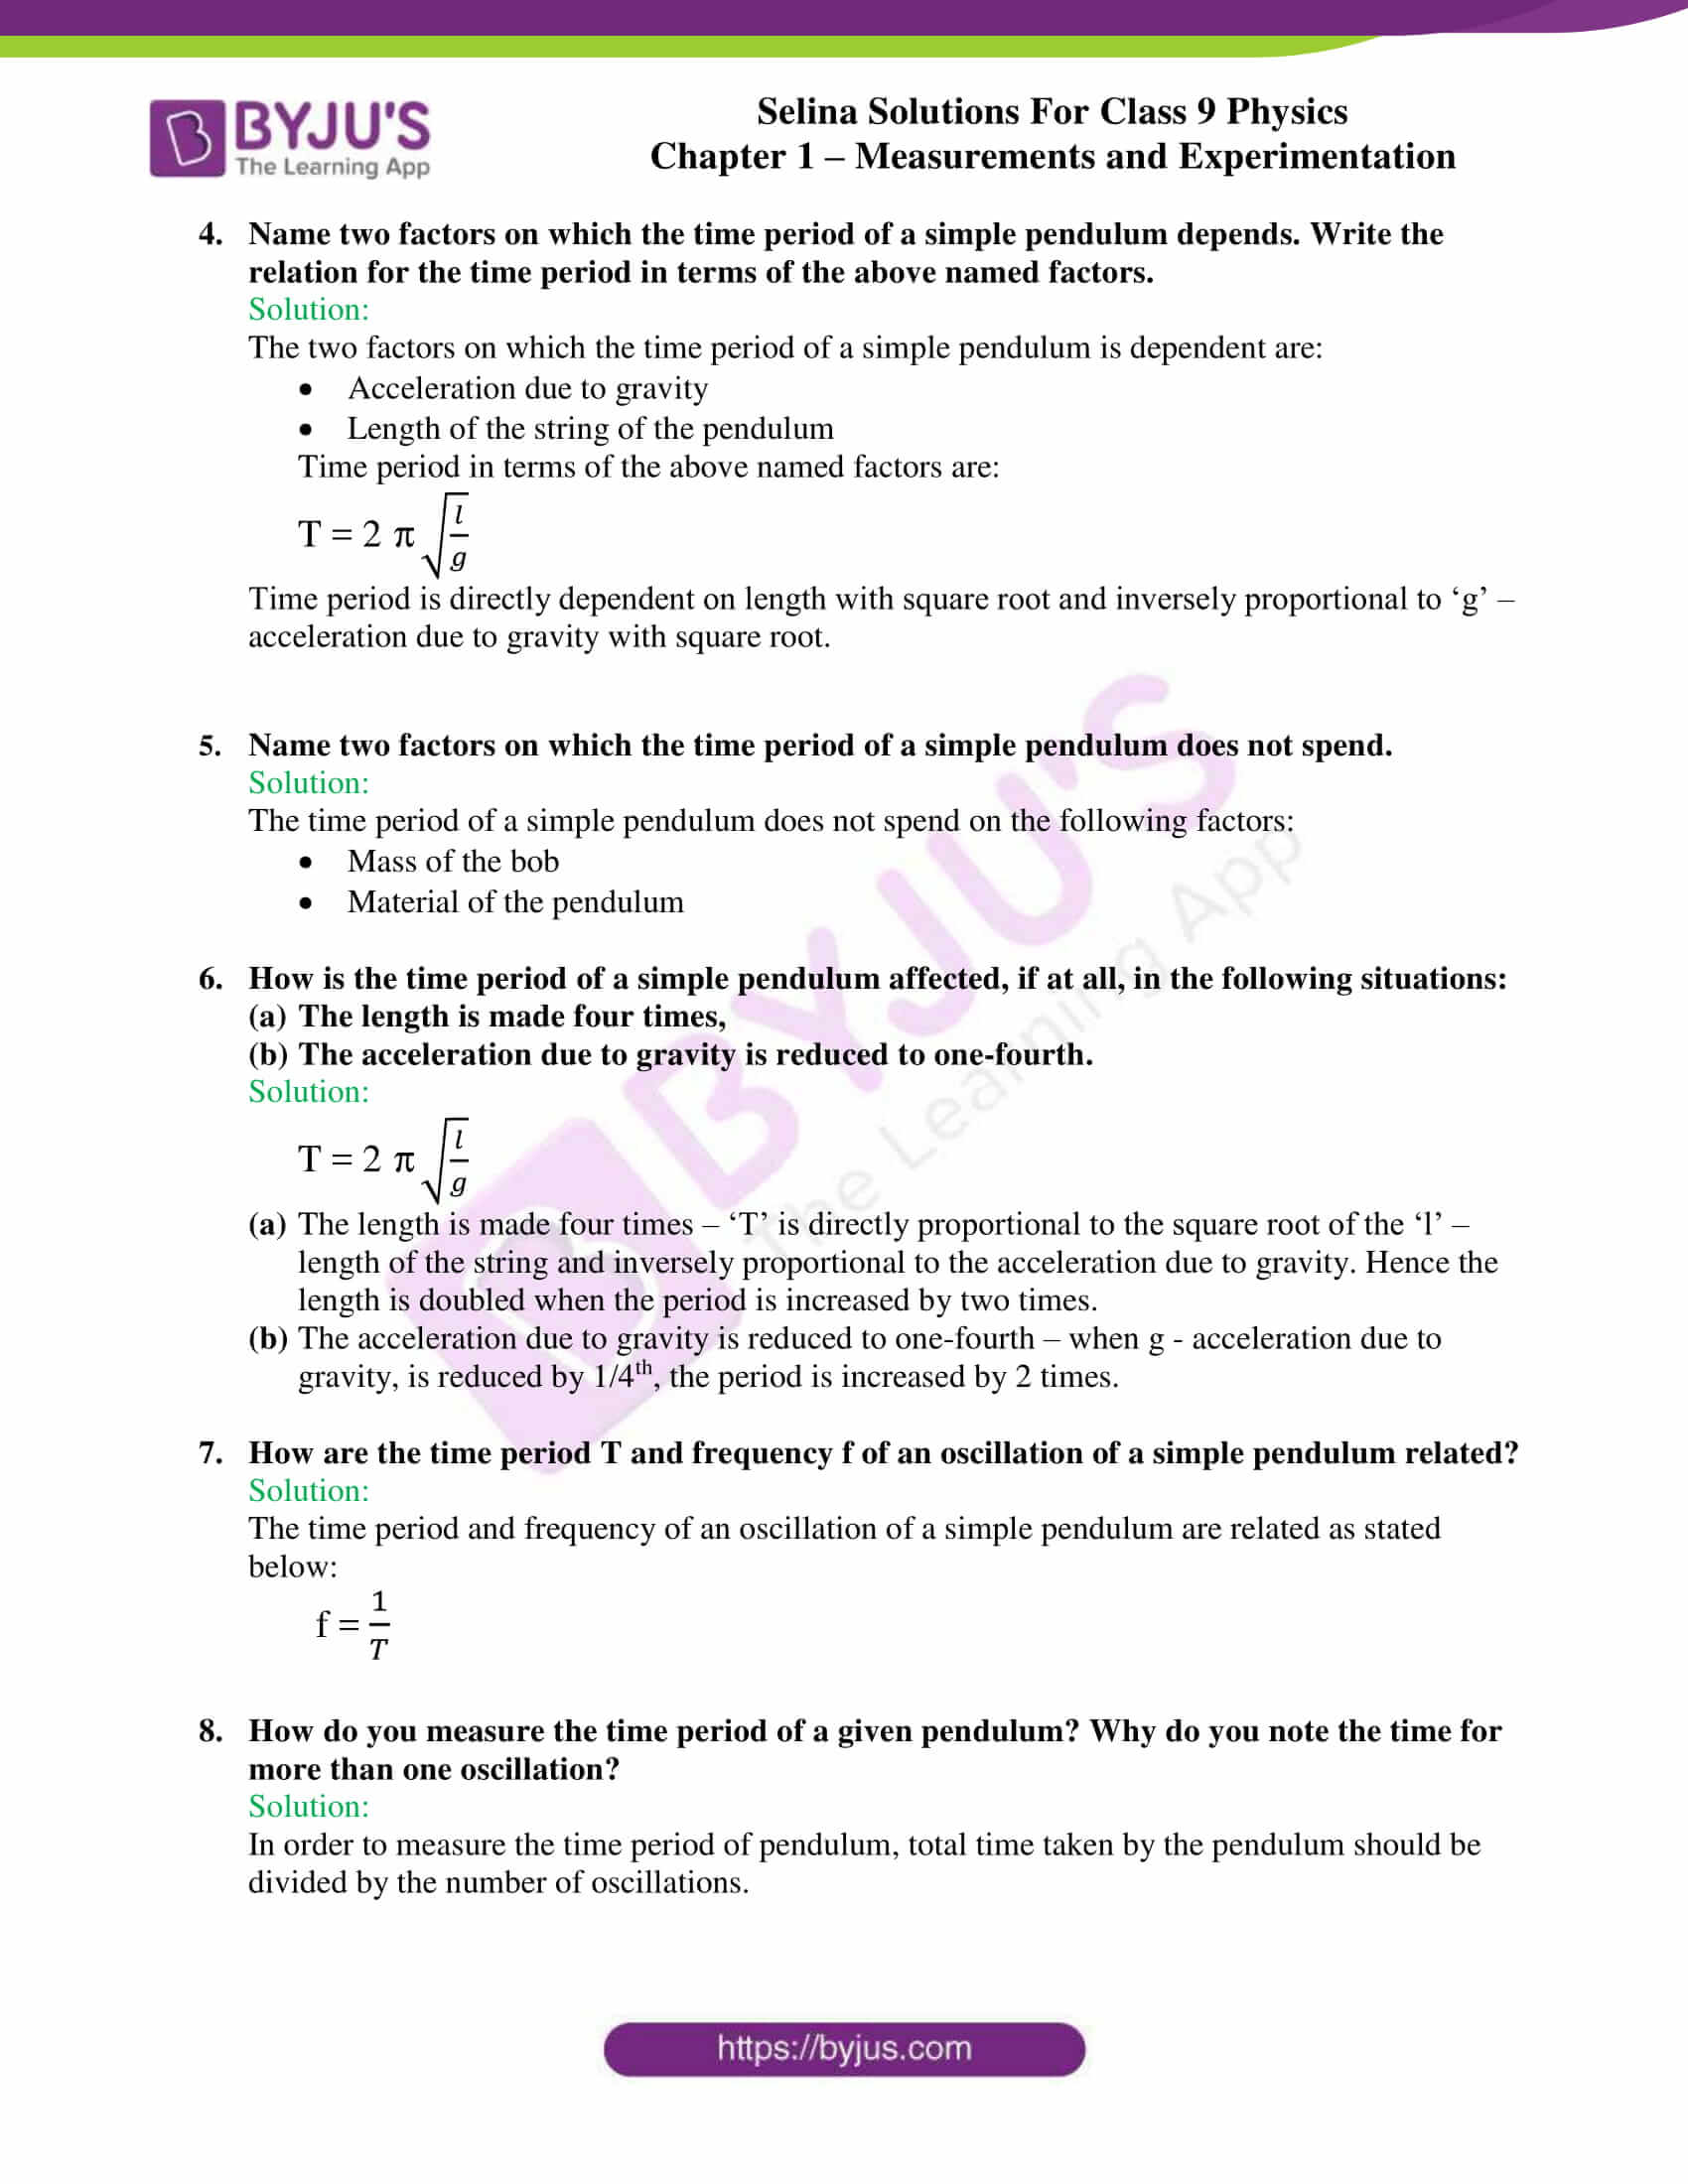 selina solutions class 9 physics chapter 1 Measurements and Experimentation part 26